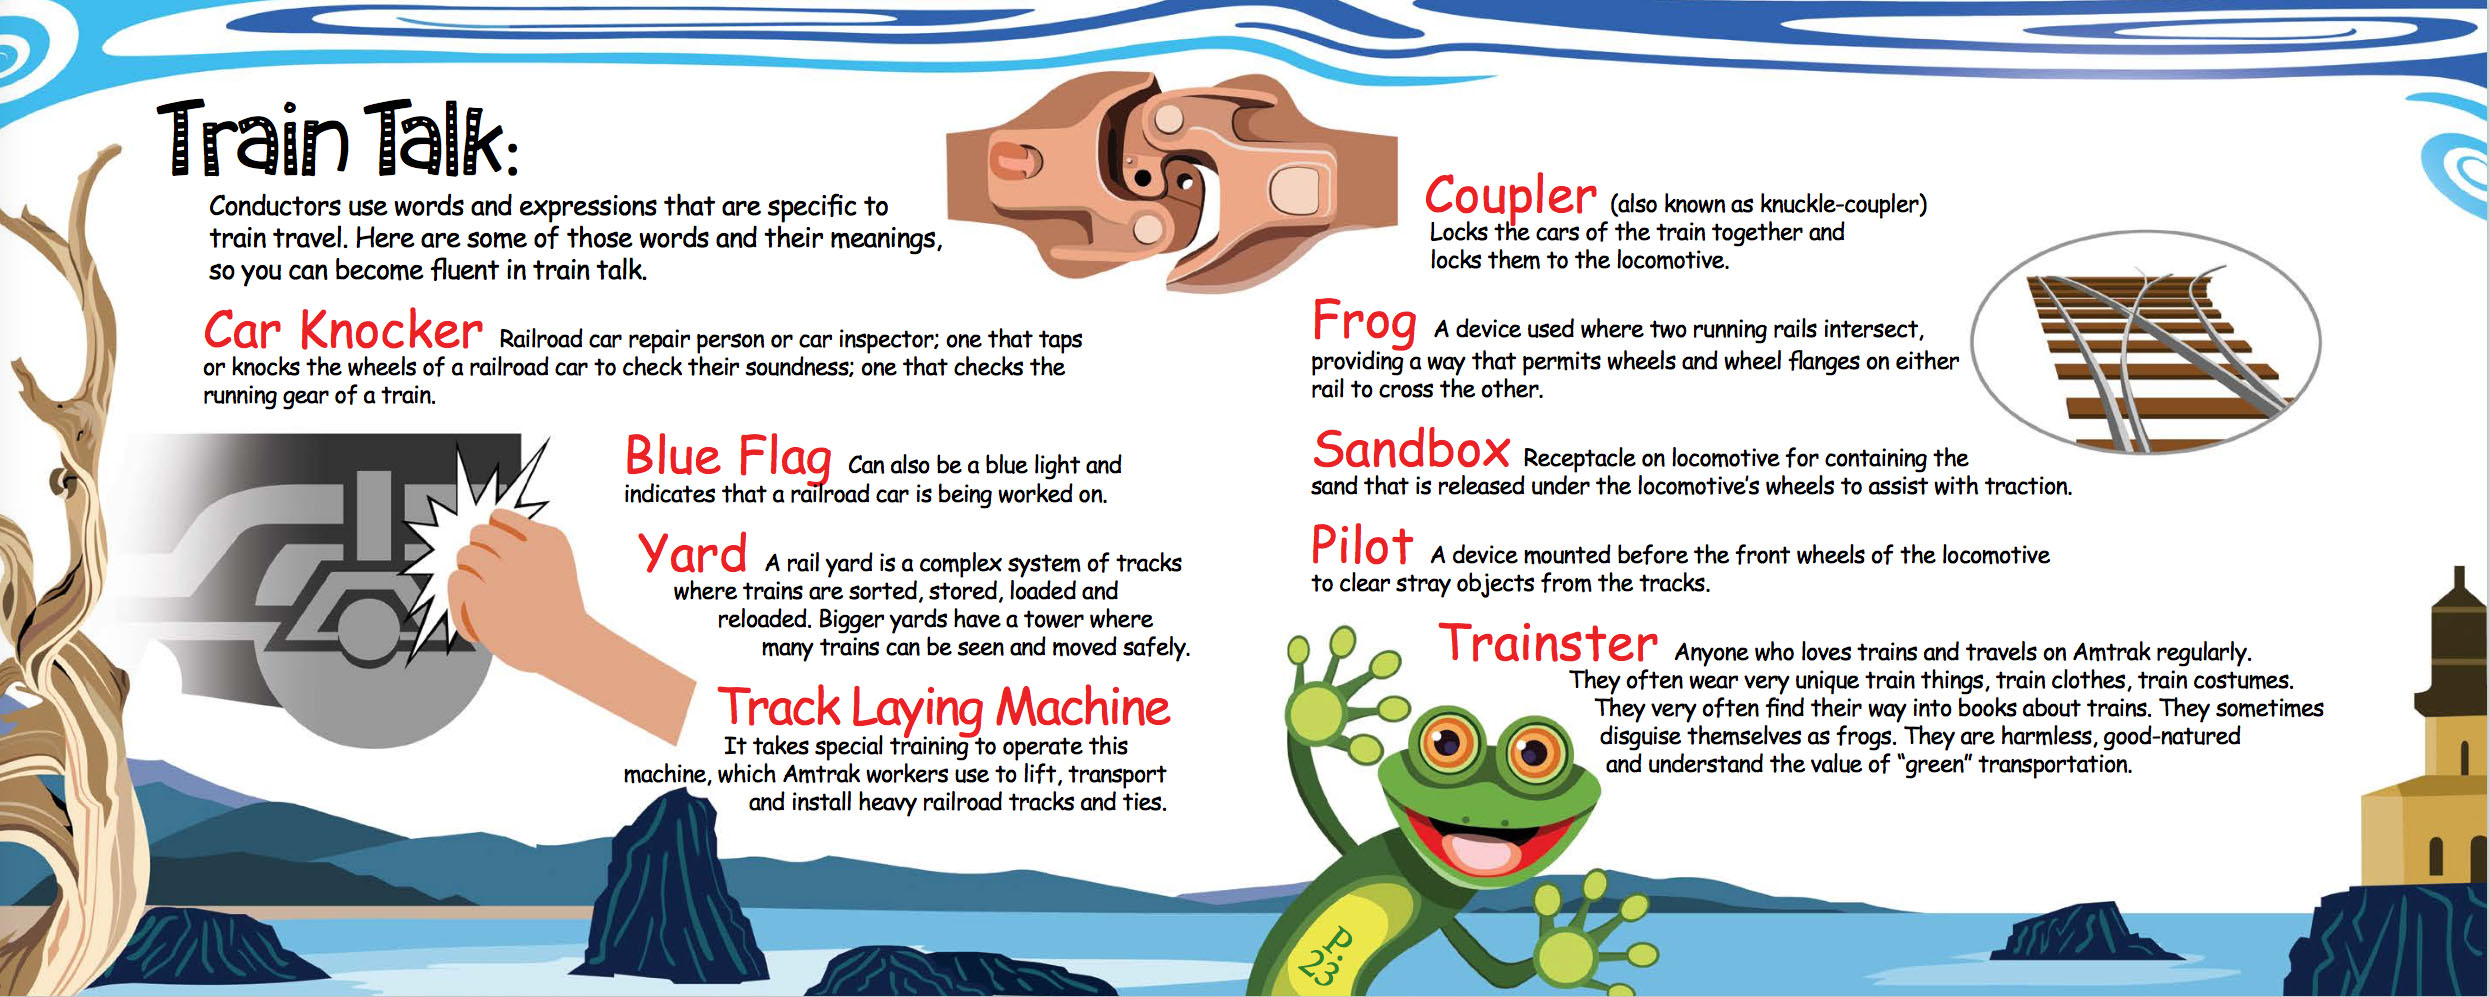 childrens-activity-book_11